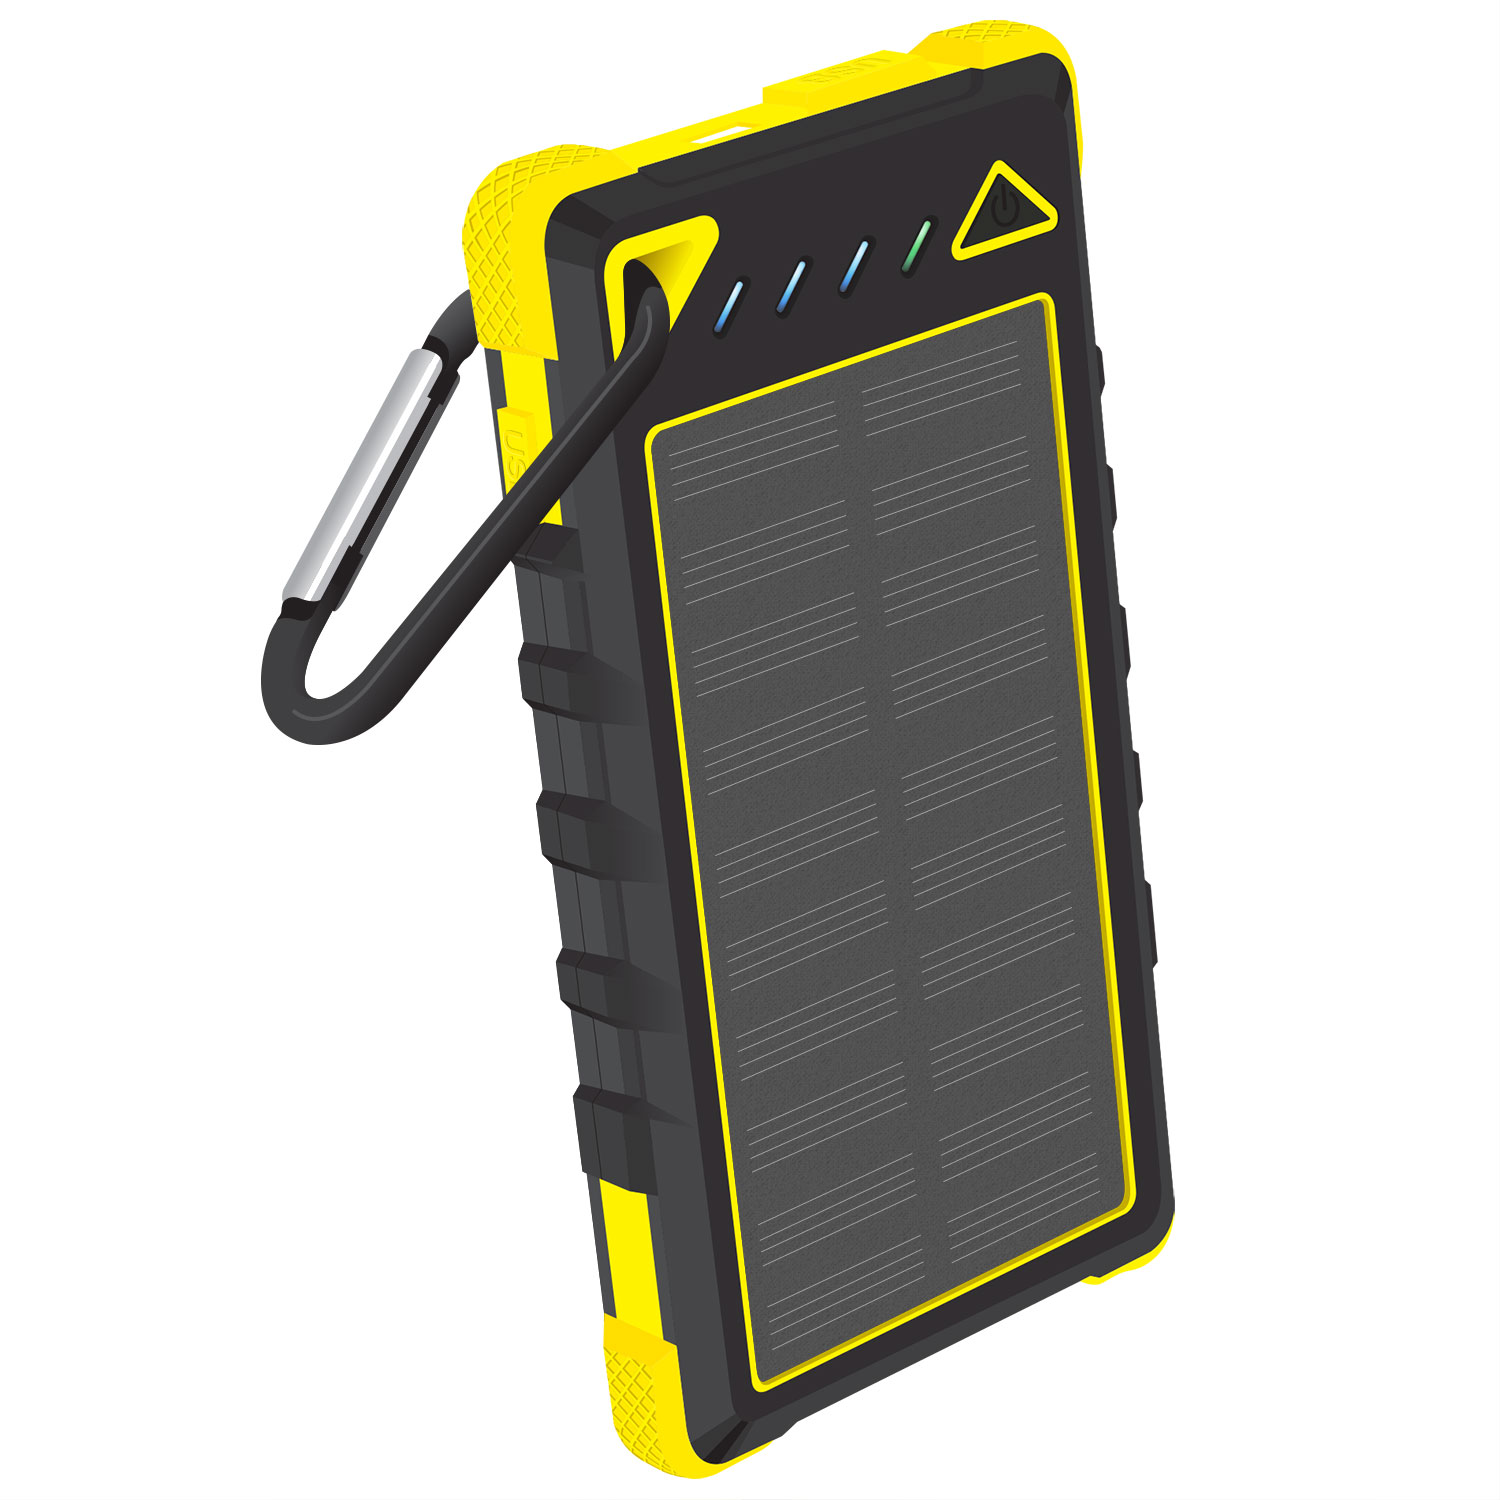 Samsung Galaxy S9 Plus Solar Powered Portable PowerBank Type-C Yellow